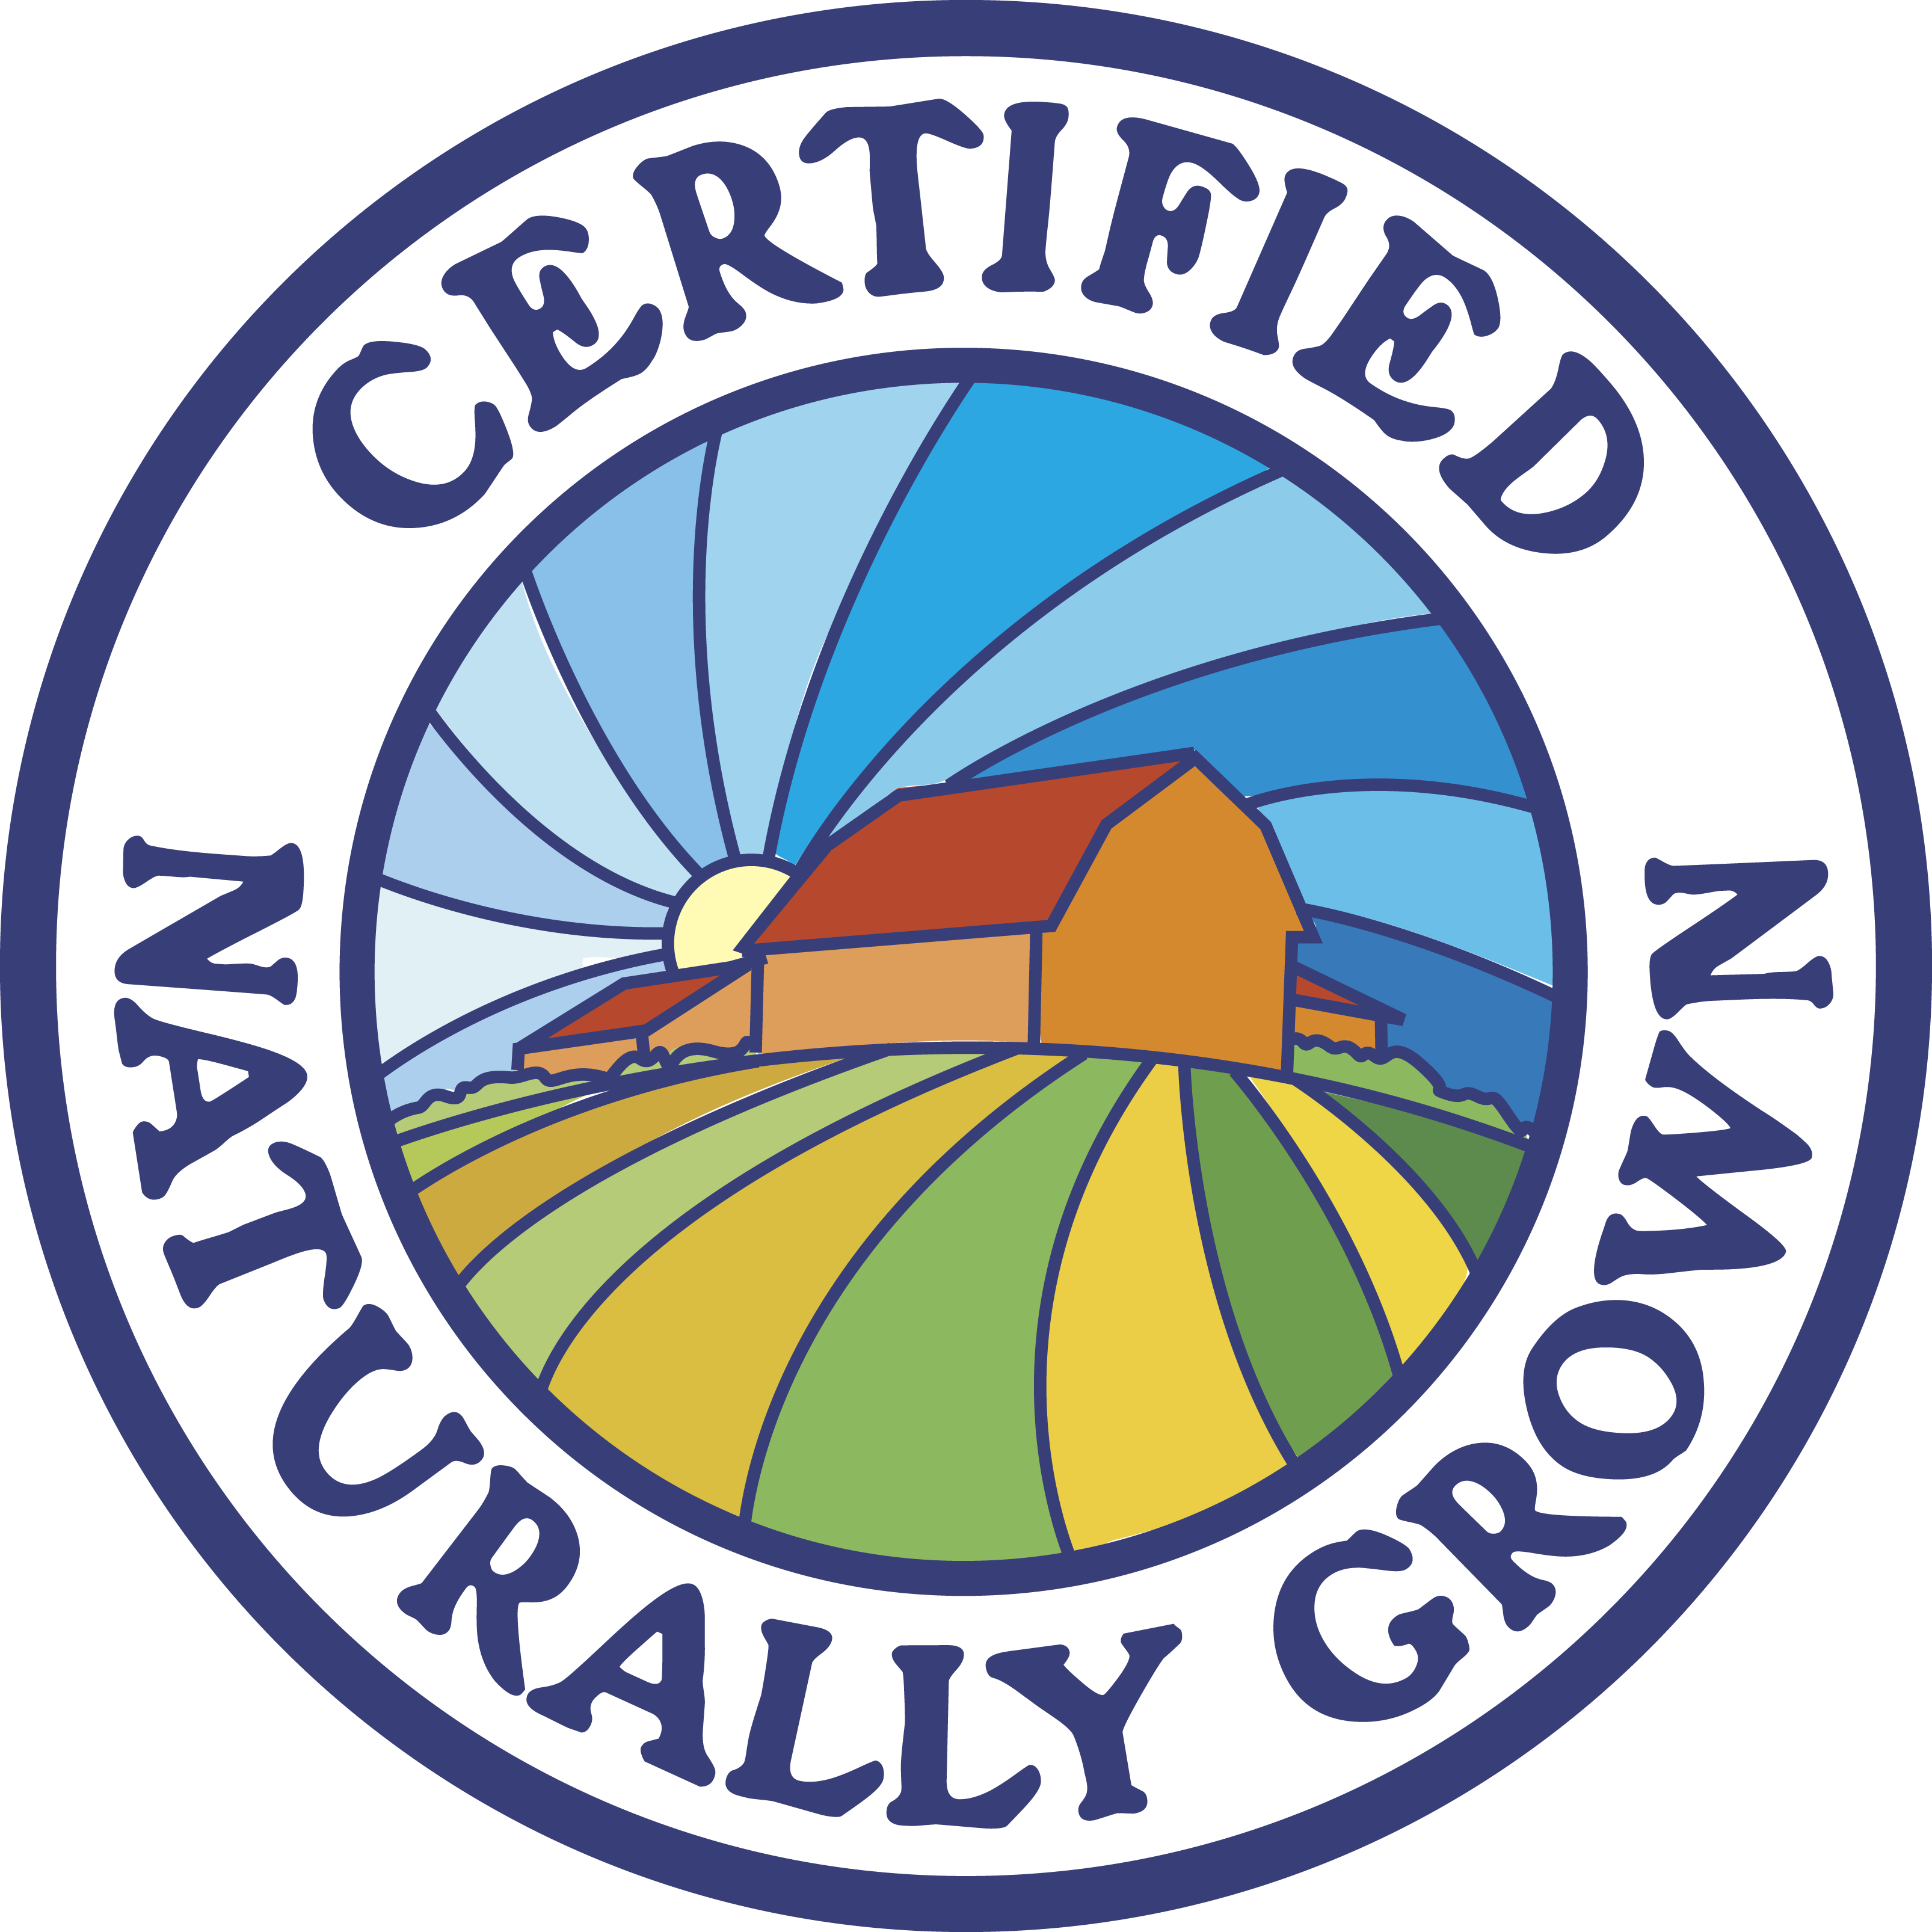 Certification marketing beginning farmer network of massachusetts certified naturally grown cng is a non profit organization offering certification tailored for farmers and beekeepers producing food for their local xflitez Images